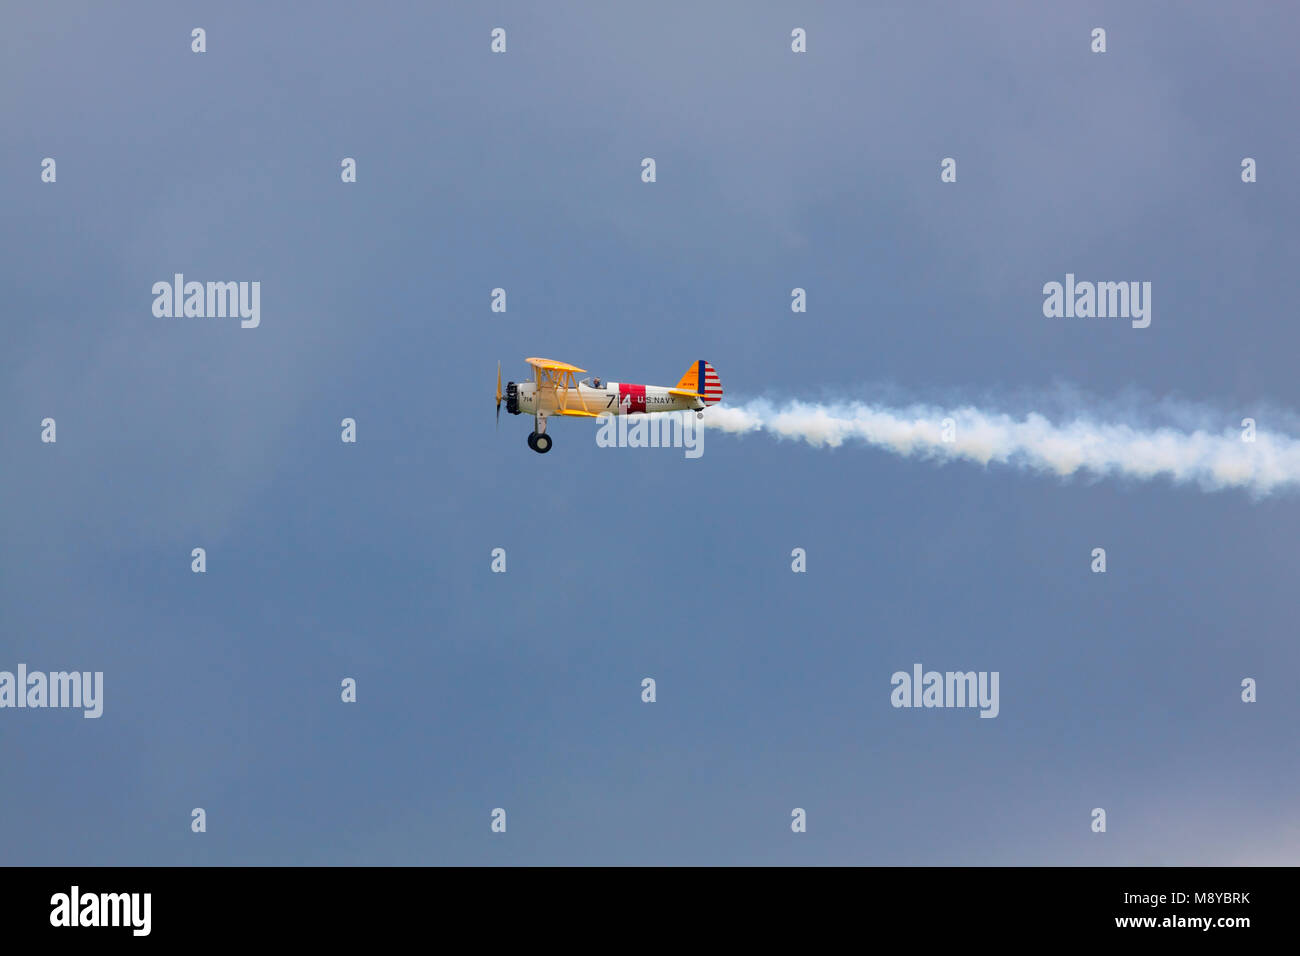 The Boeing Stearman N2S-3 in US Navy markings flying over dark sky during International Air Show at the 90th Jubilee - Stock Image